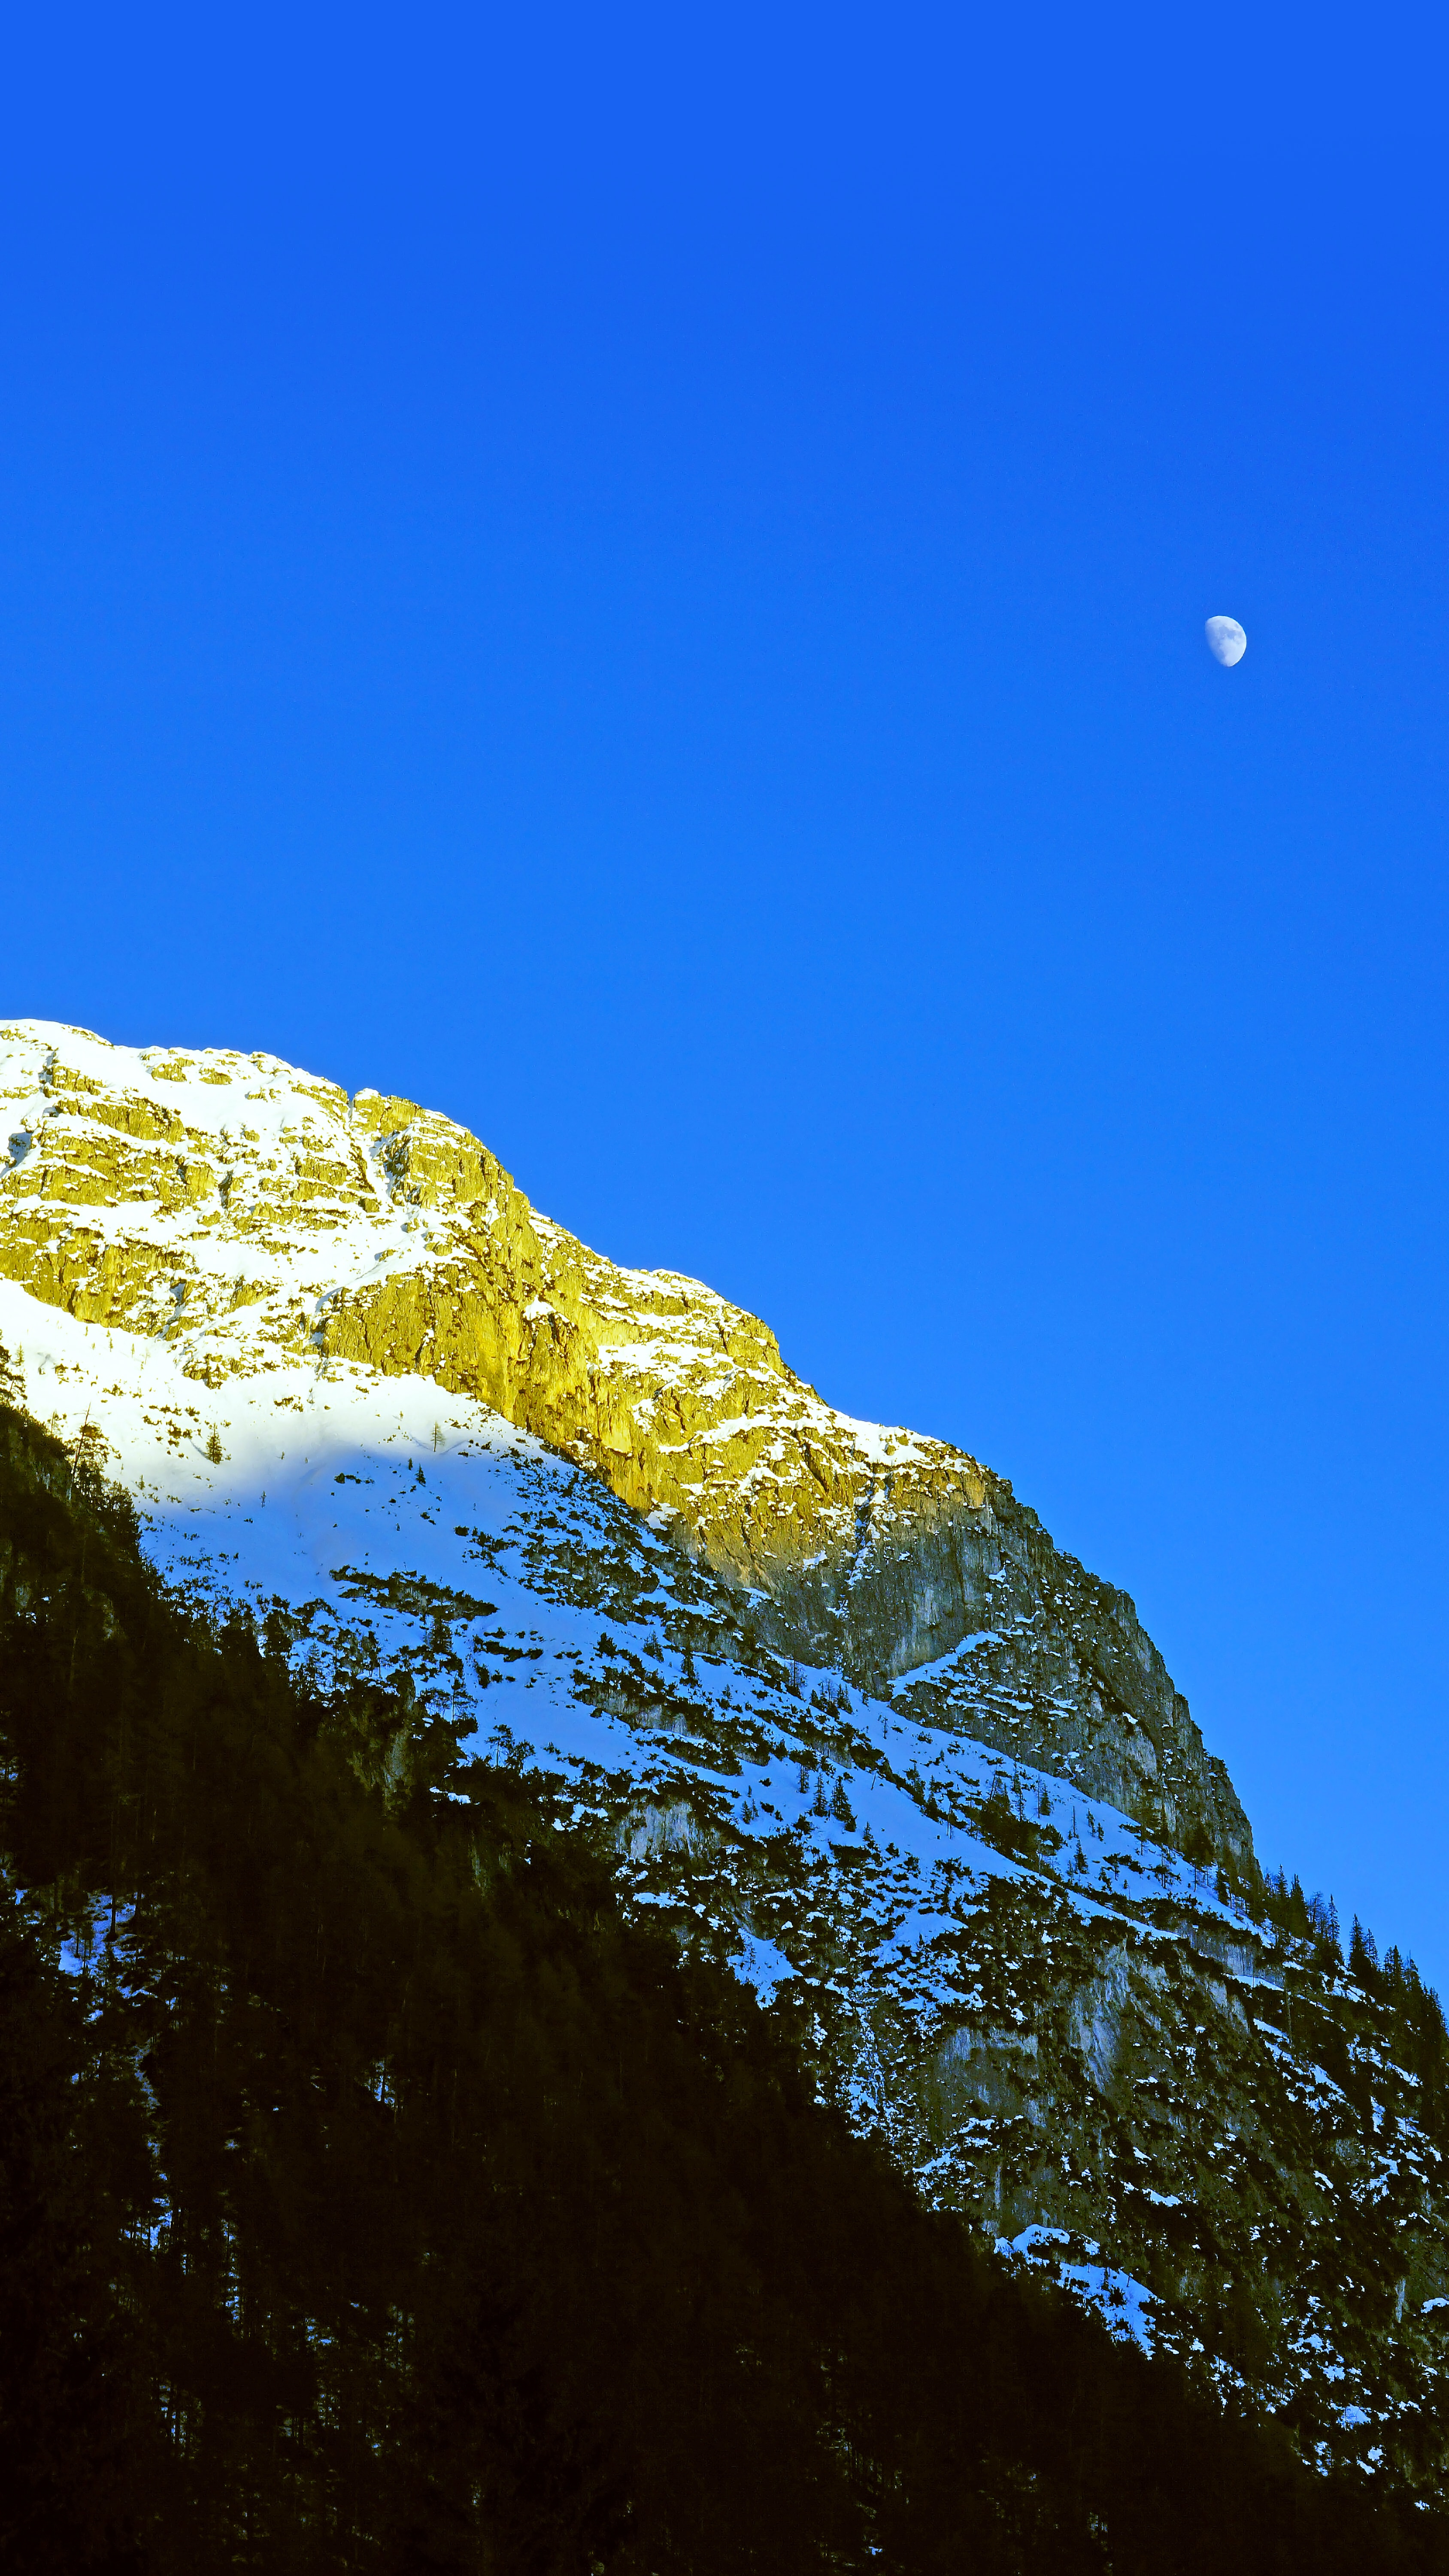 54668 download wallpaper Nature, Rocks, Moon, Trees, Snow Covered, Snowbound, Mountains screensavers and pictures for free